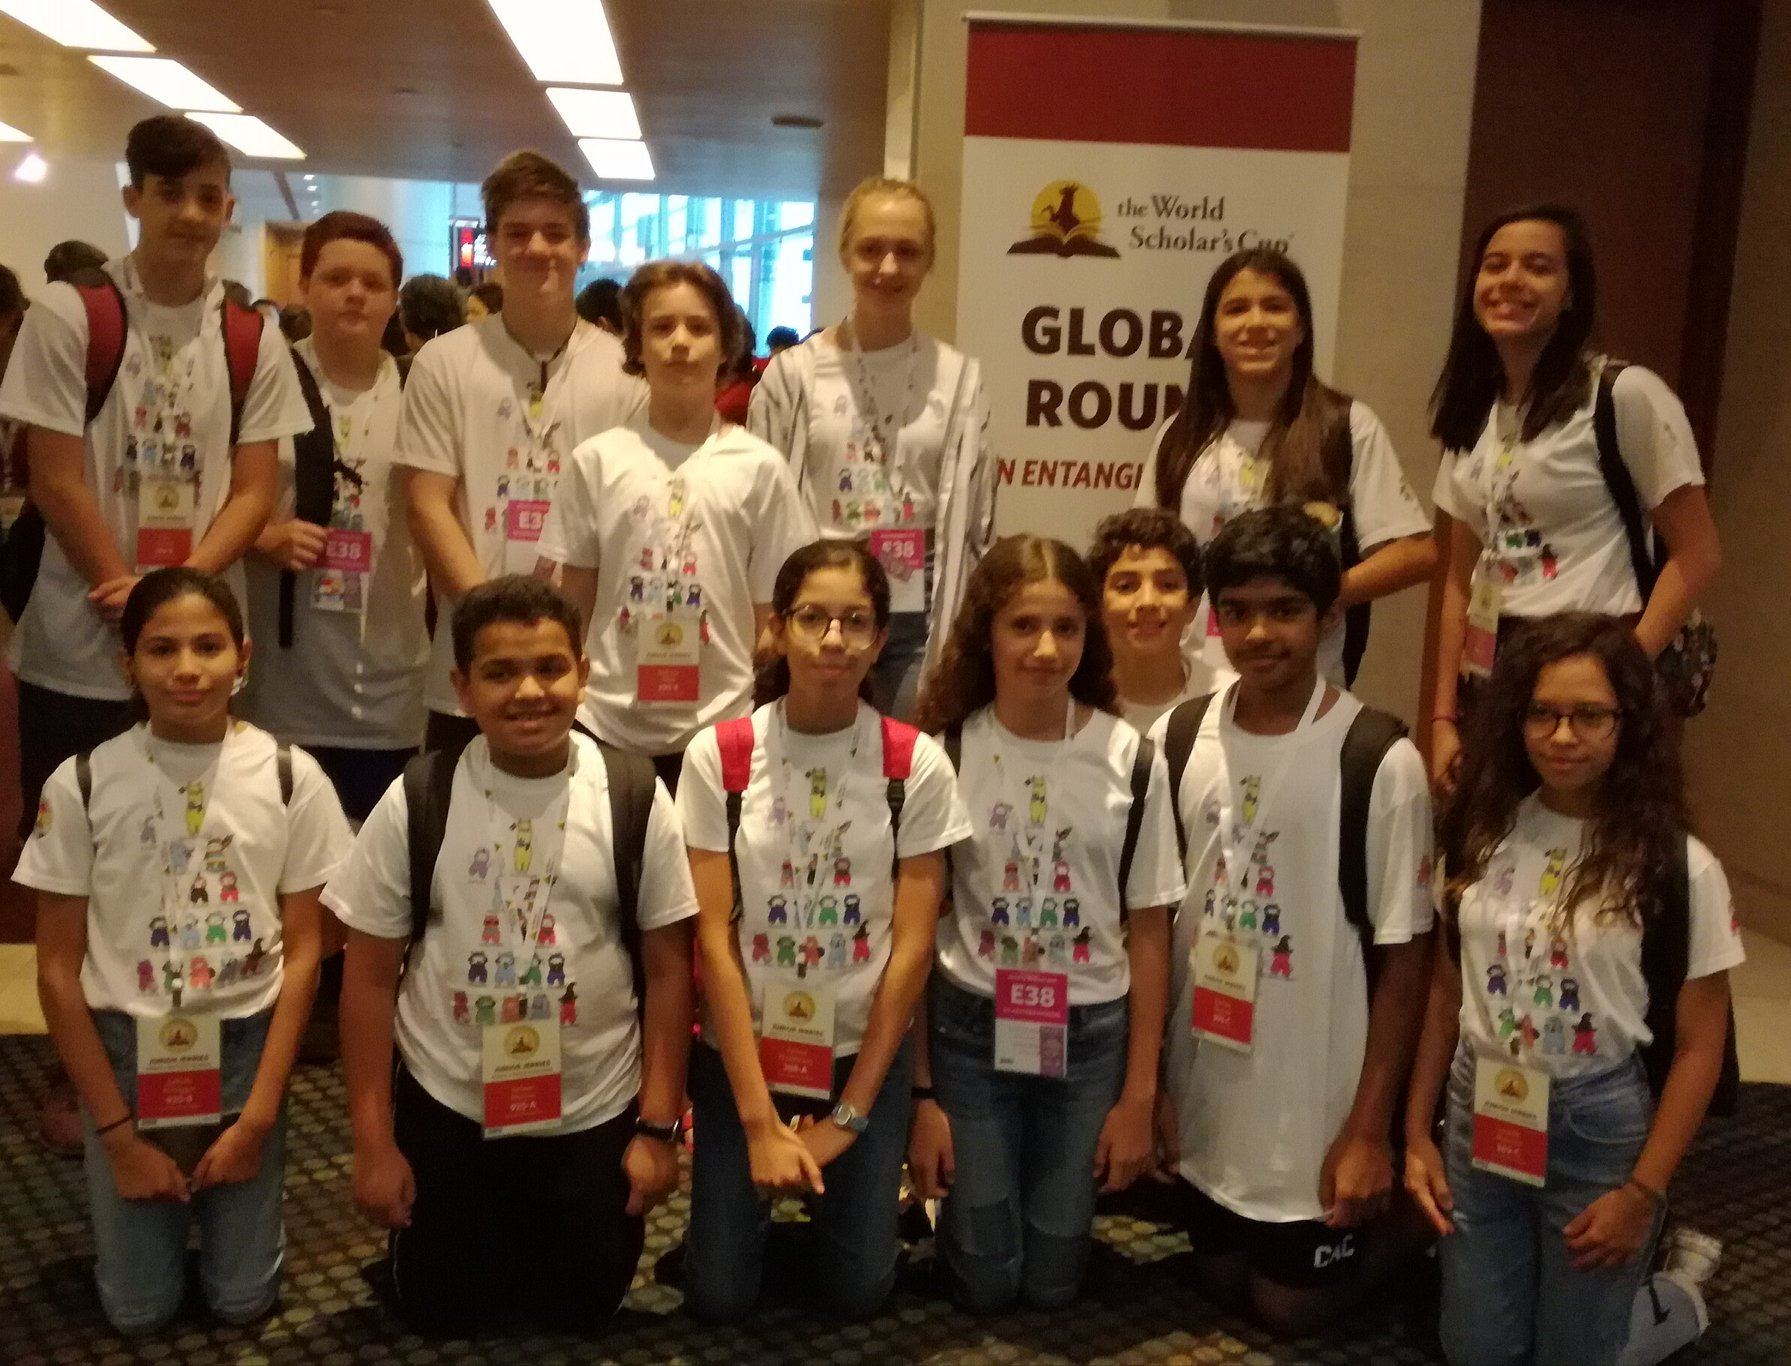 GlobalRoundWorldScholarsCup